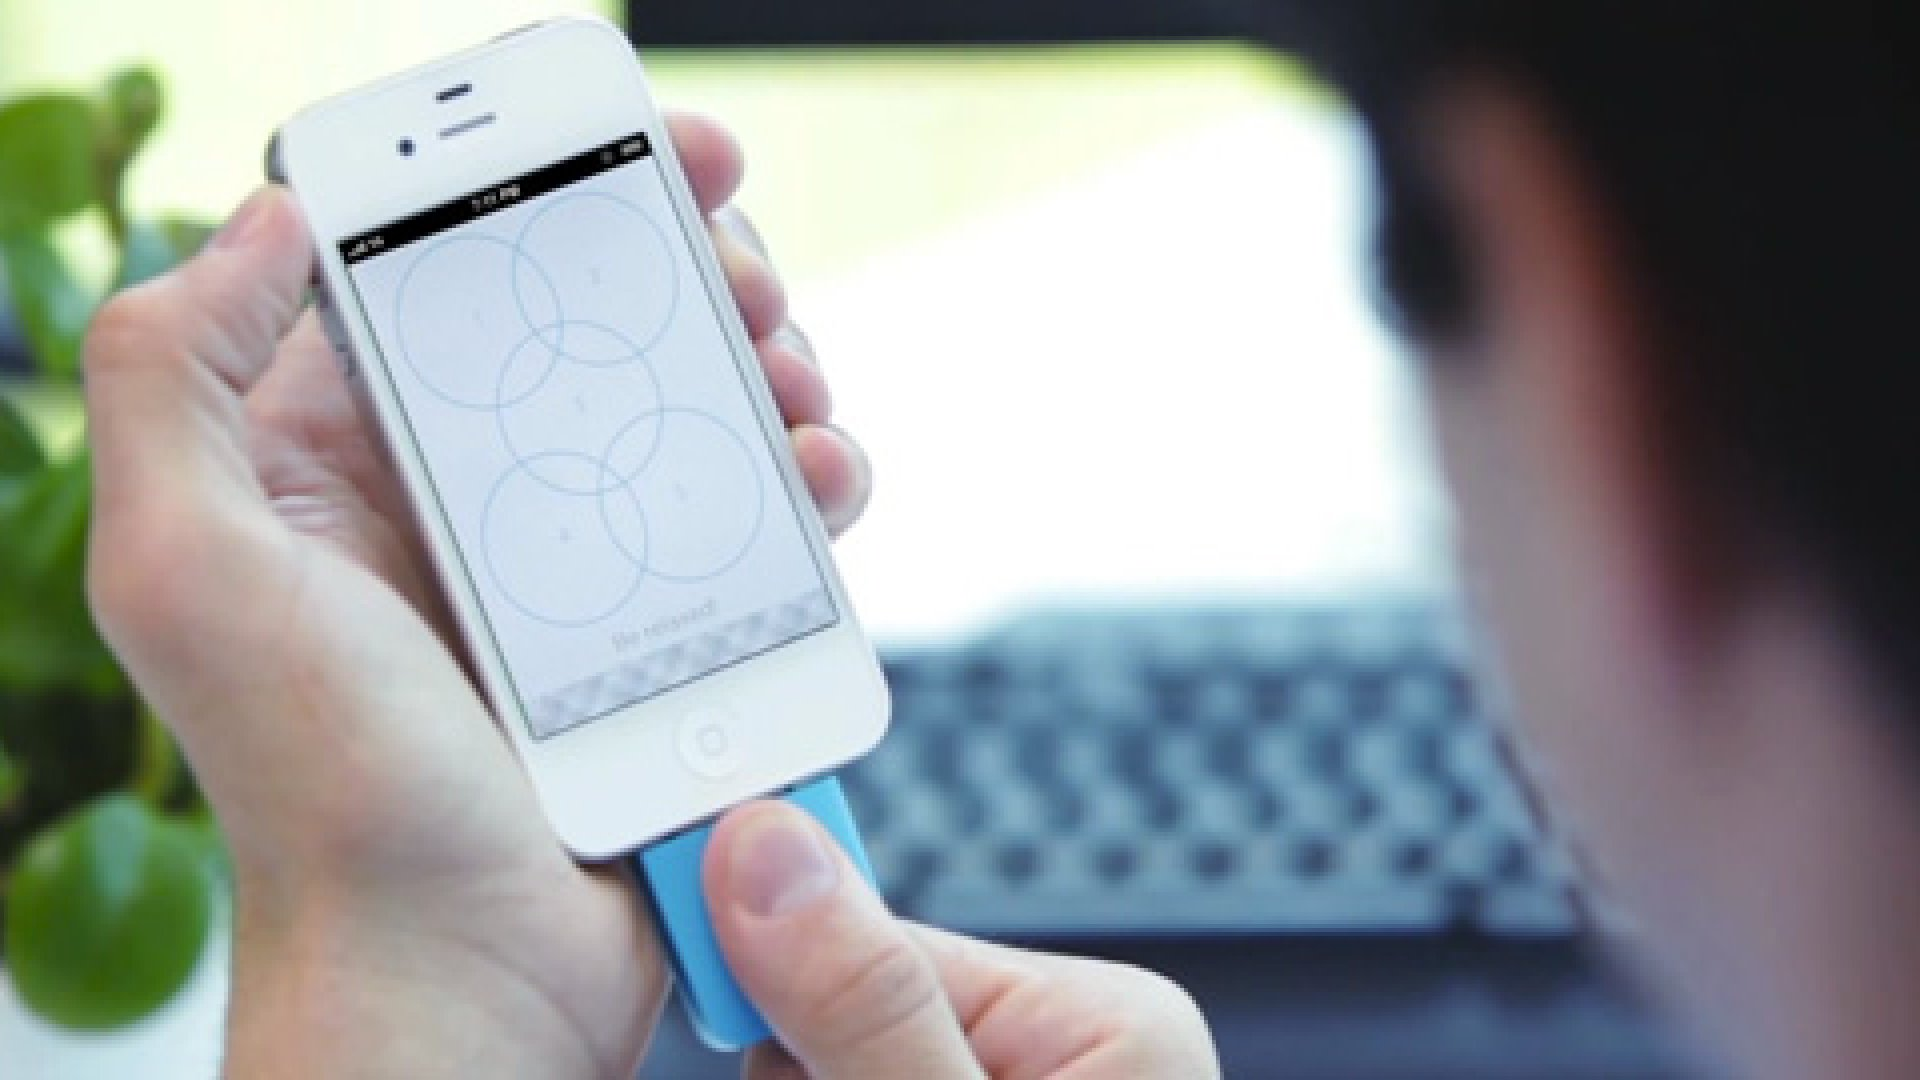 Tinké is a palm-size sensor that costs $100 and monitors your cardiorespiratory health using an iPhone or iPad.